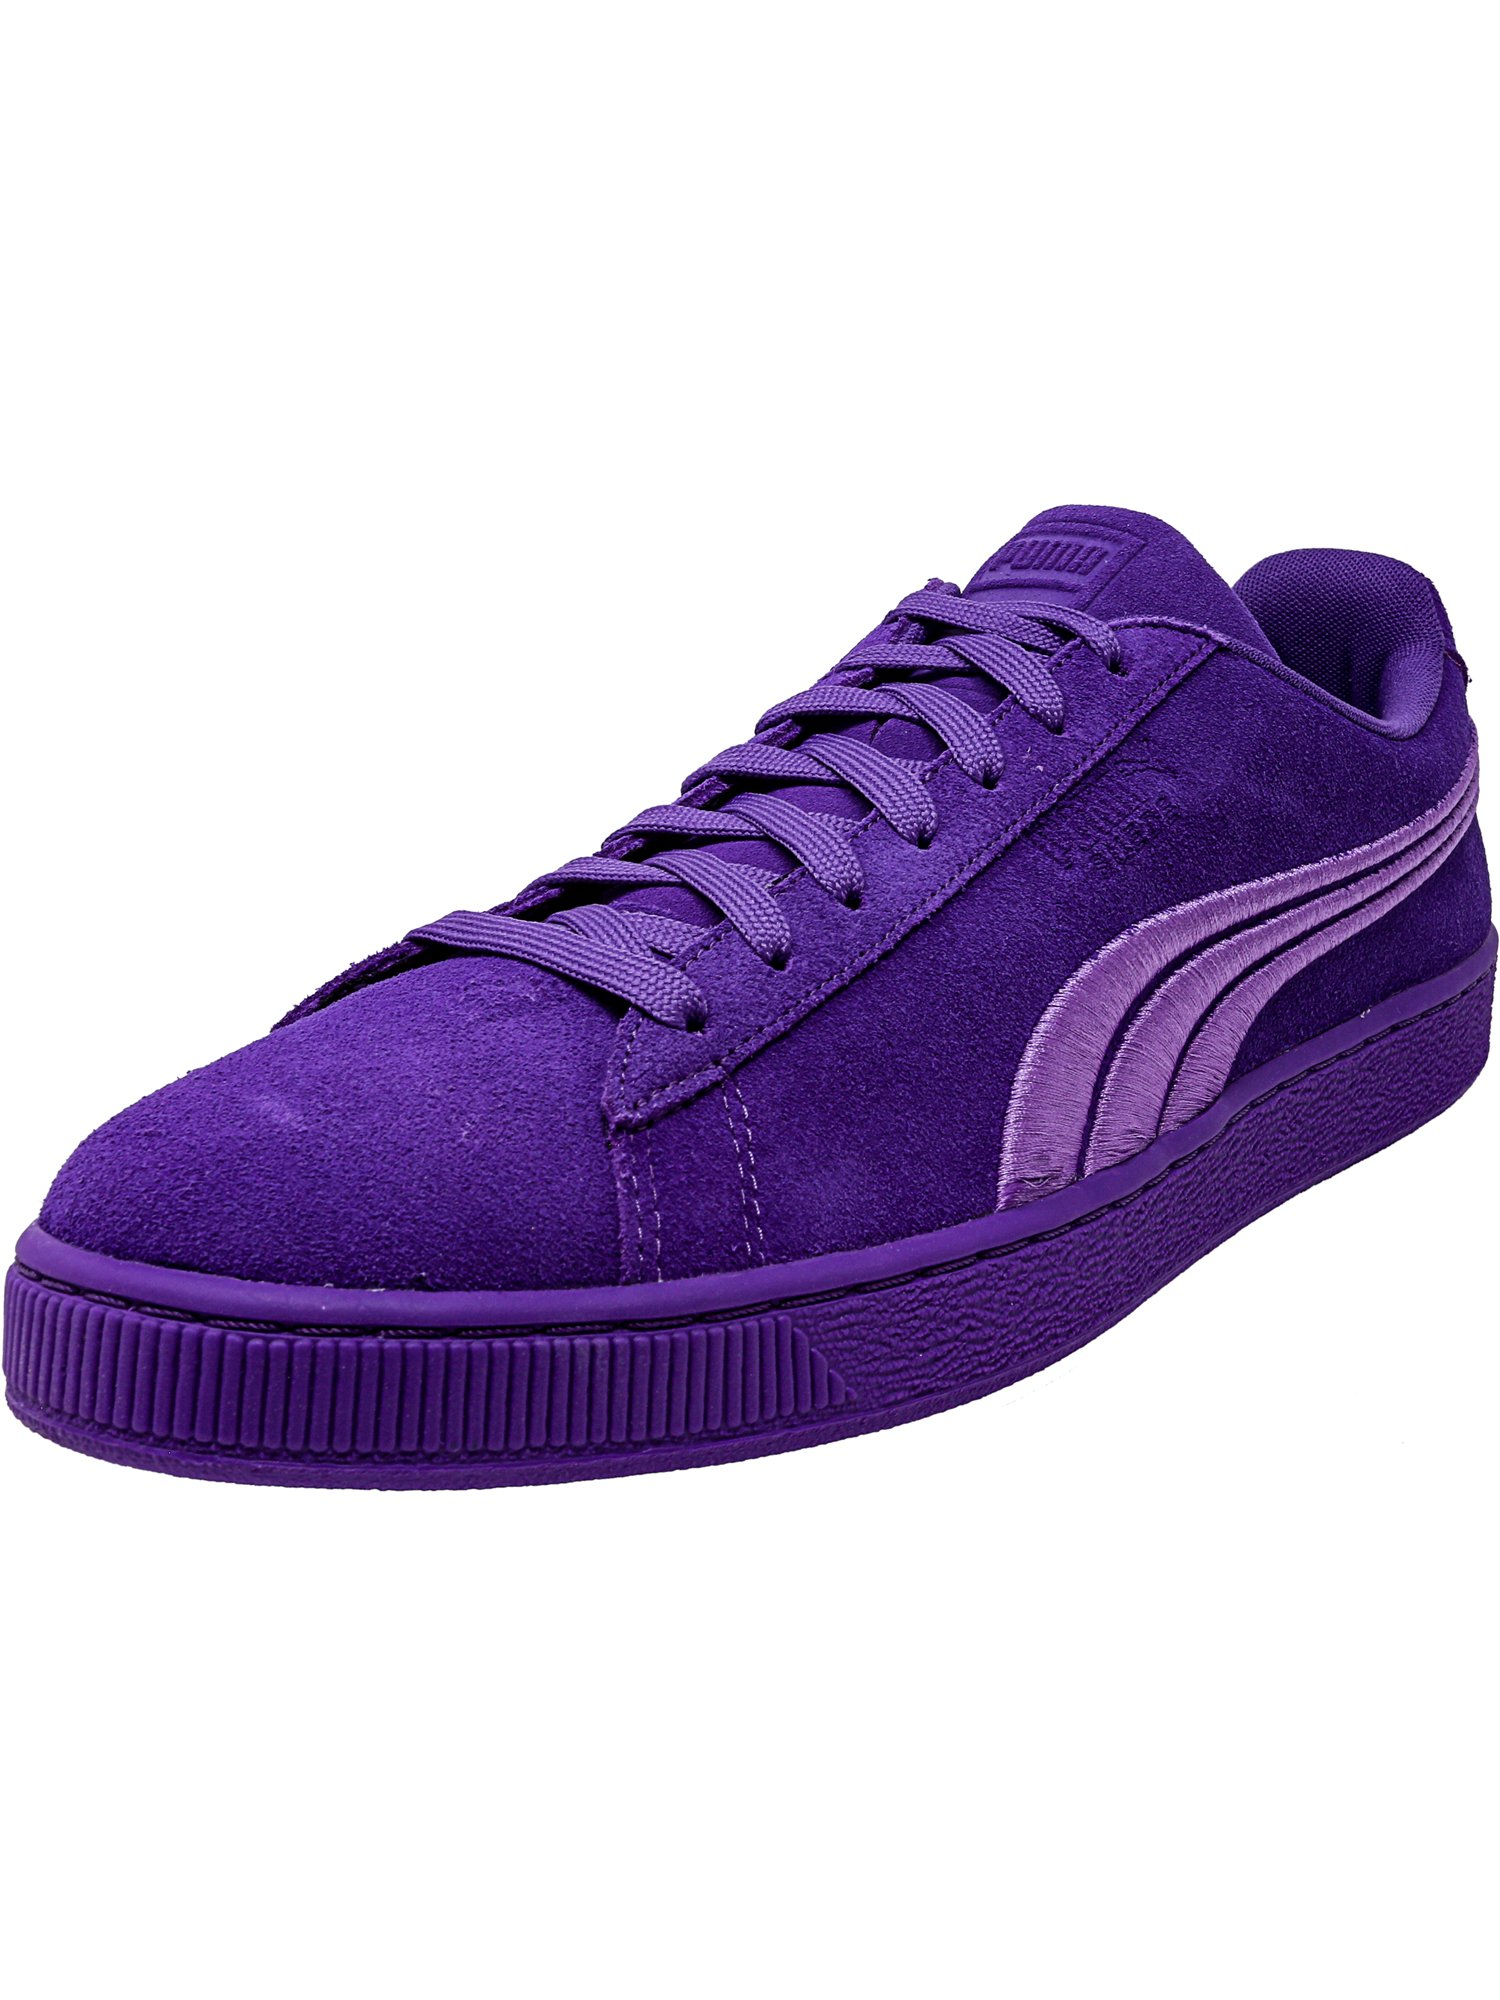 Puma Men's Classic Badge Suede Navigate Ankle-High Fashion Sneaker - 13M